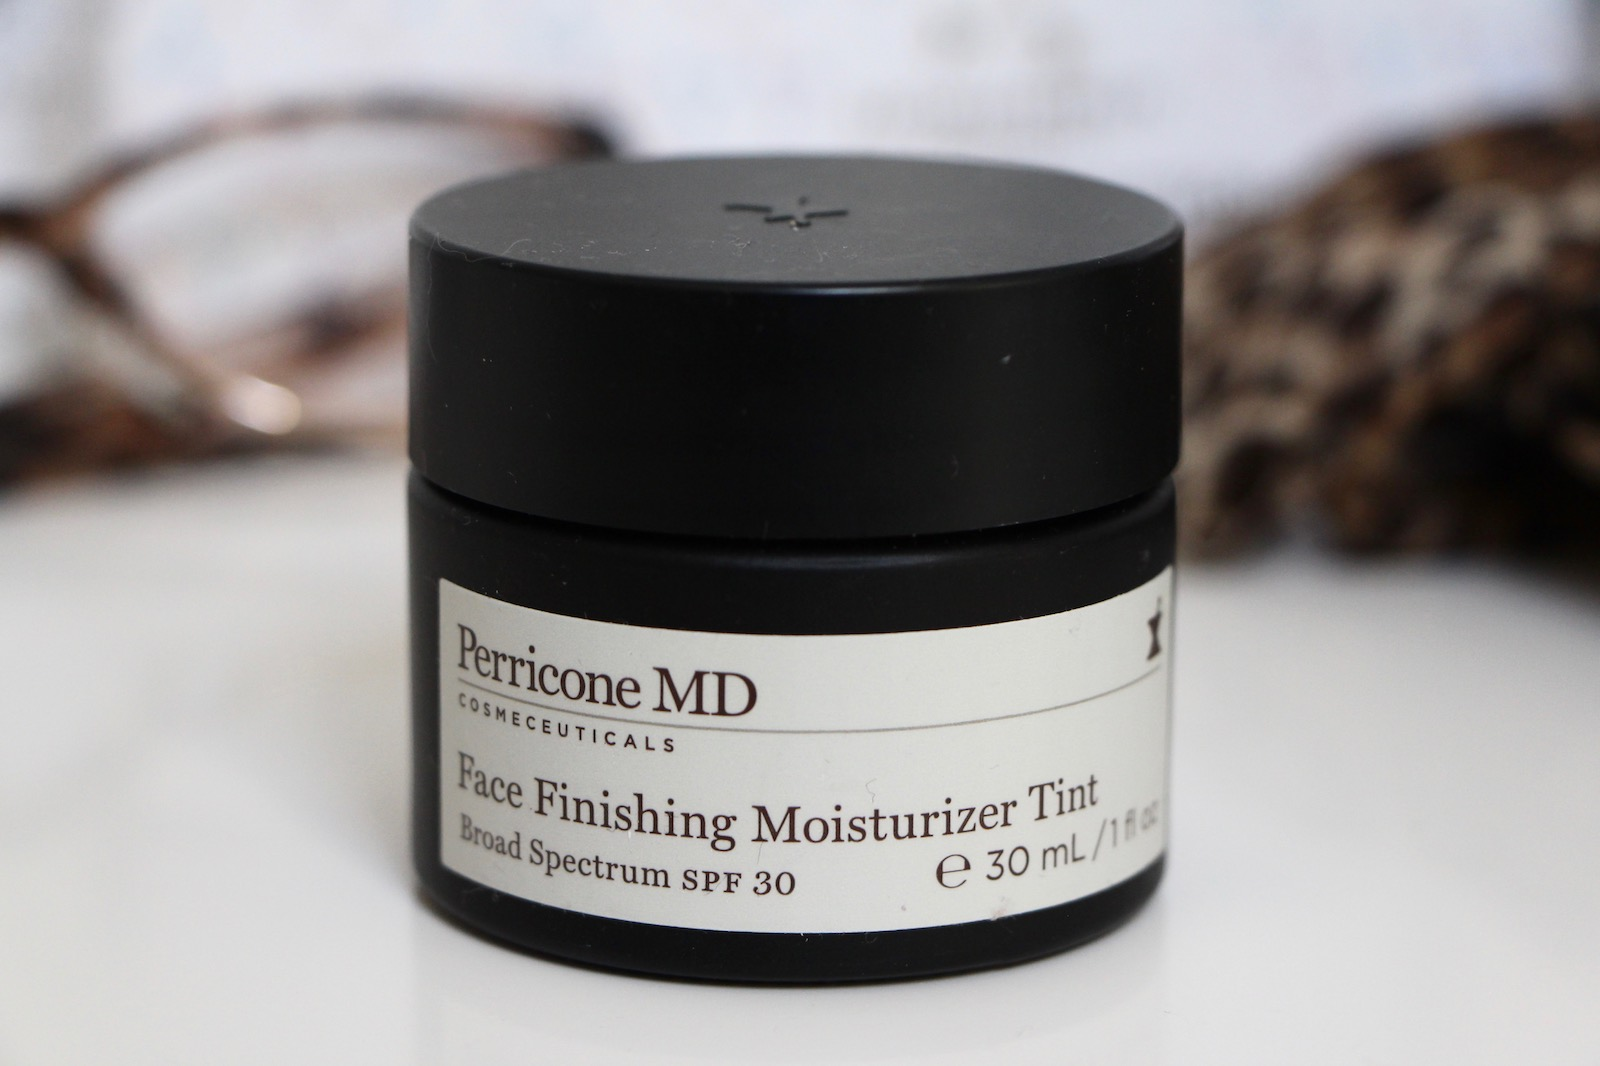 The Protecting, Tinting, Hydrating, Face-Finishing Moisturizer. Phew.